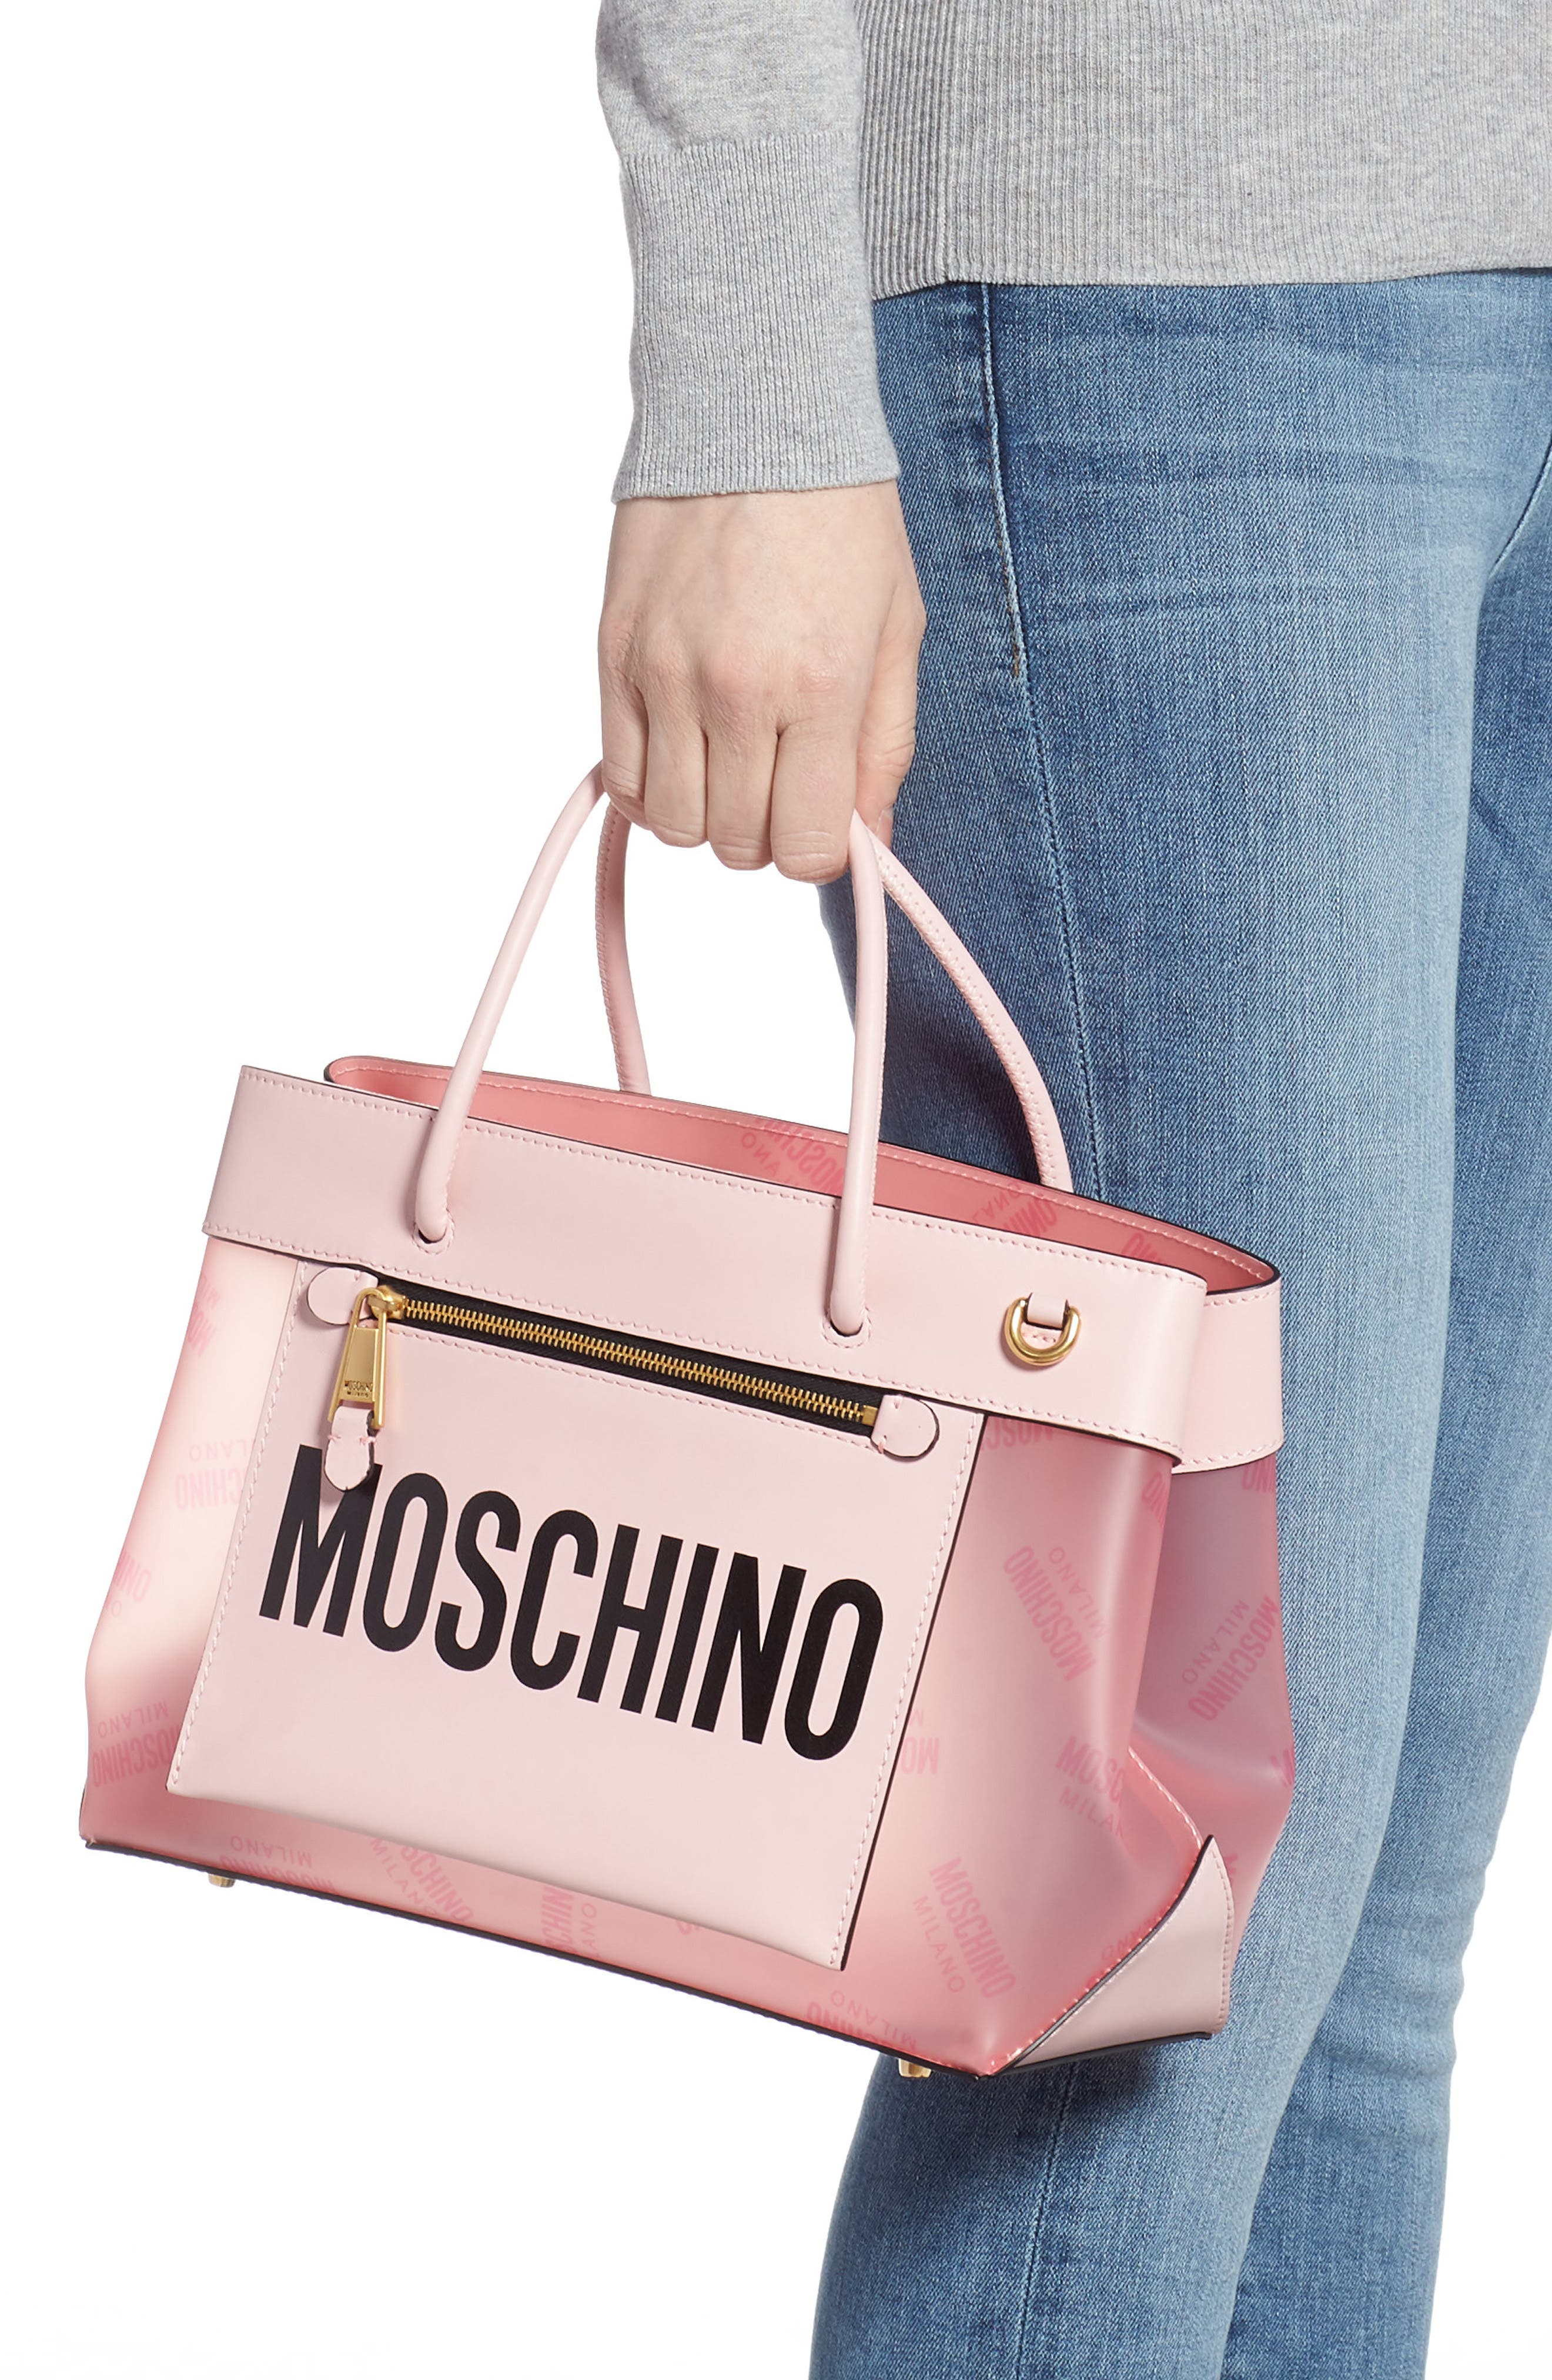 MOSCHINO,                             Translucent Logo Tote,                             Alternate thumbnail 2, color,                             PINK